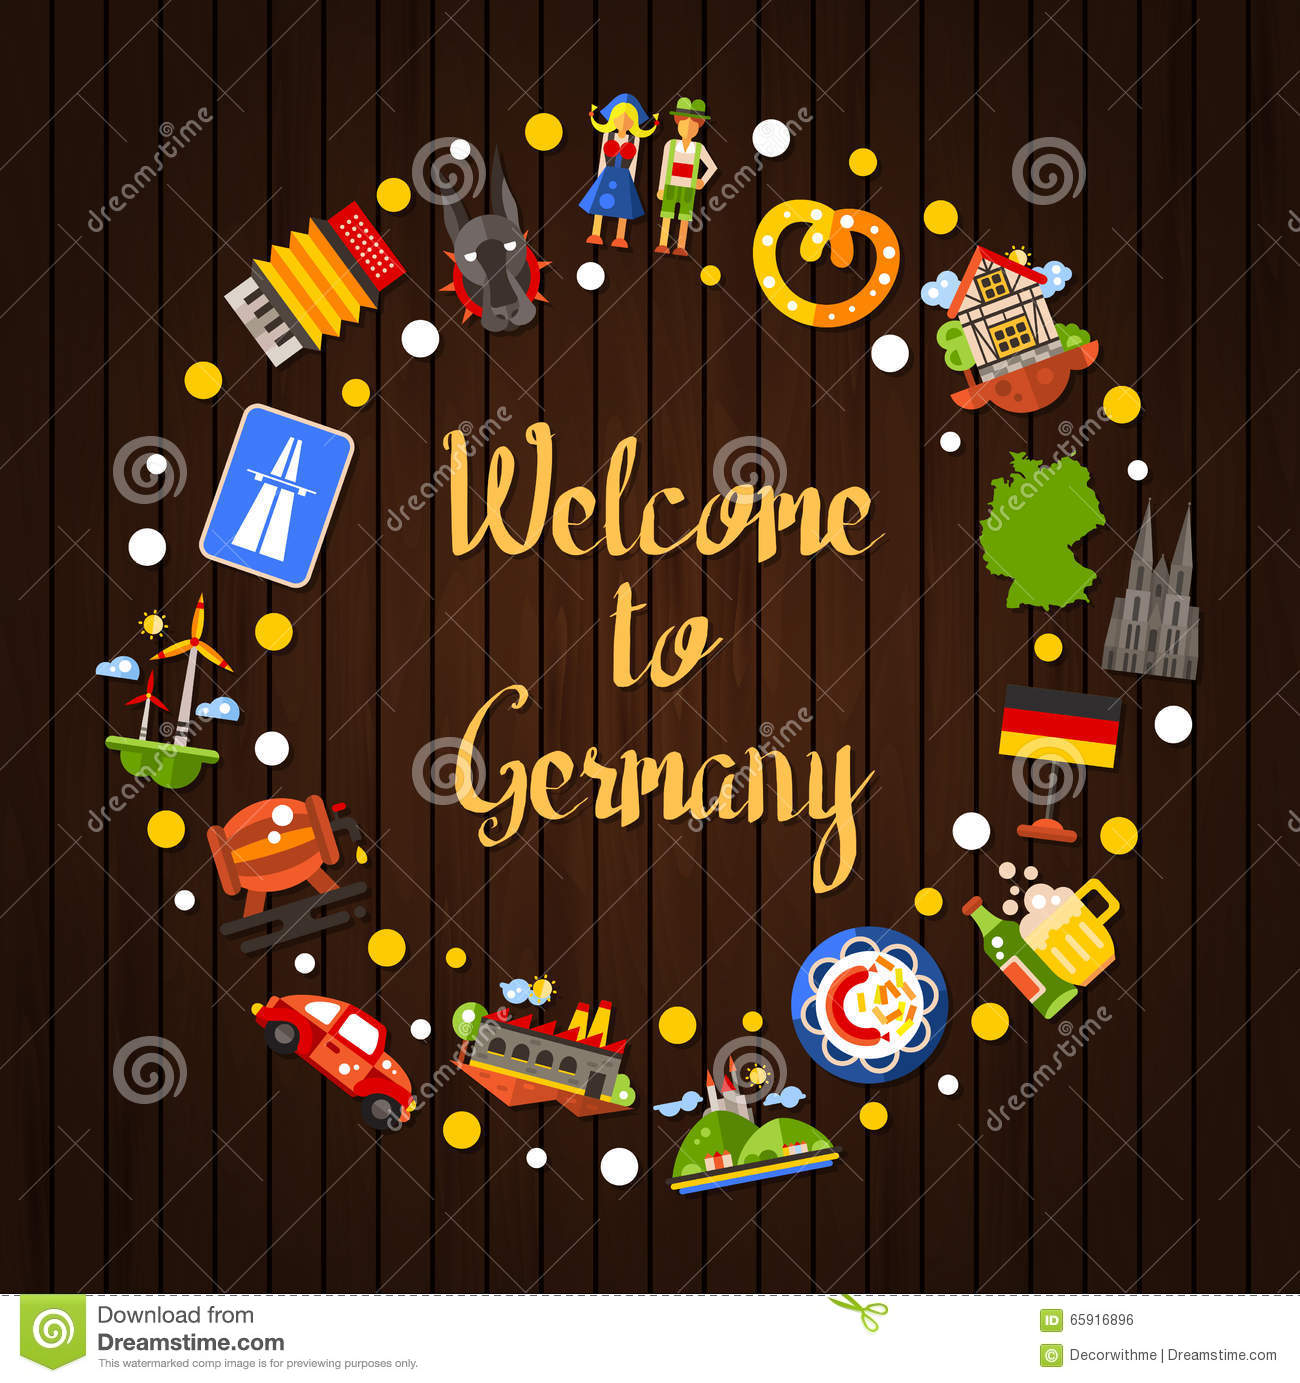 I Want To Visit Germany In German: Germany Travel Circle Postcard With Famous German Symbols